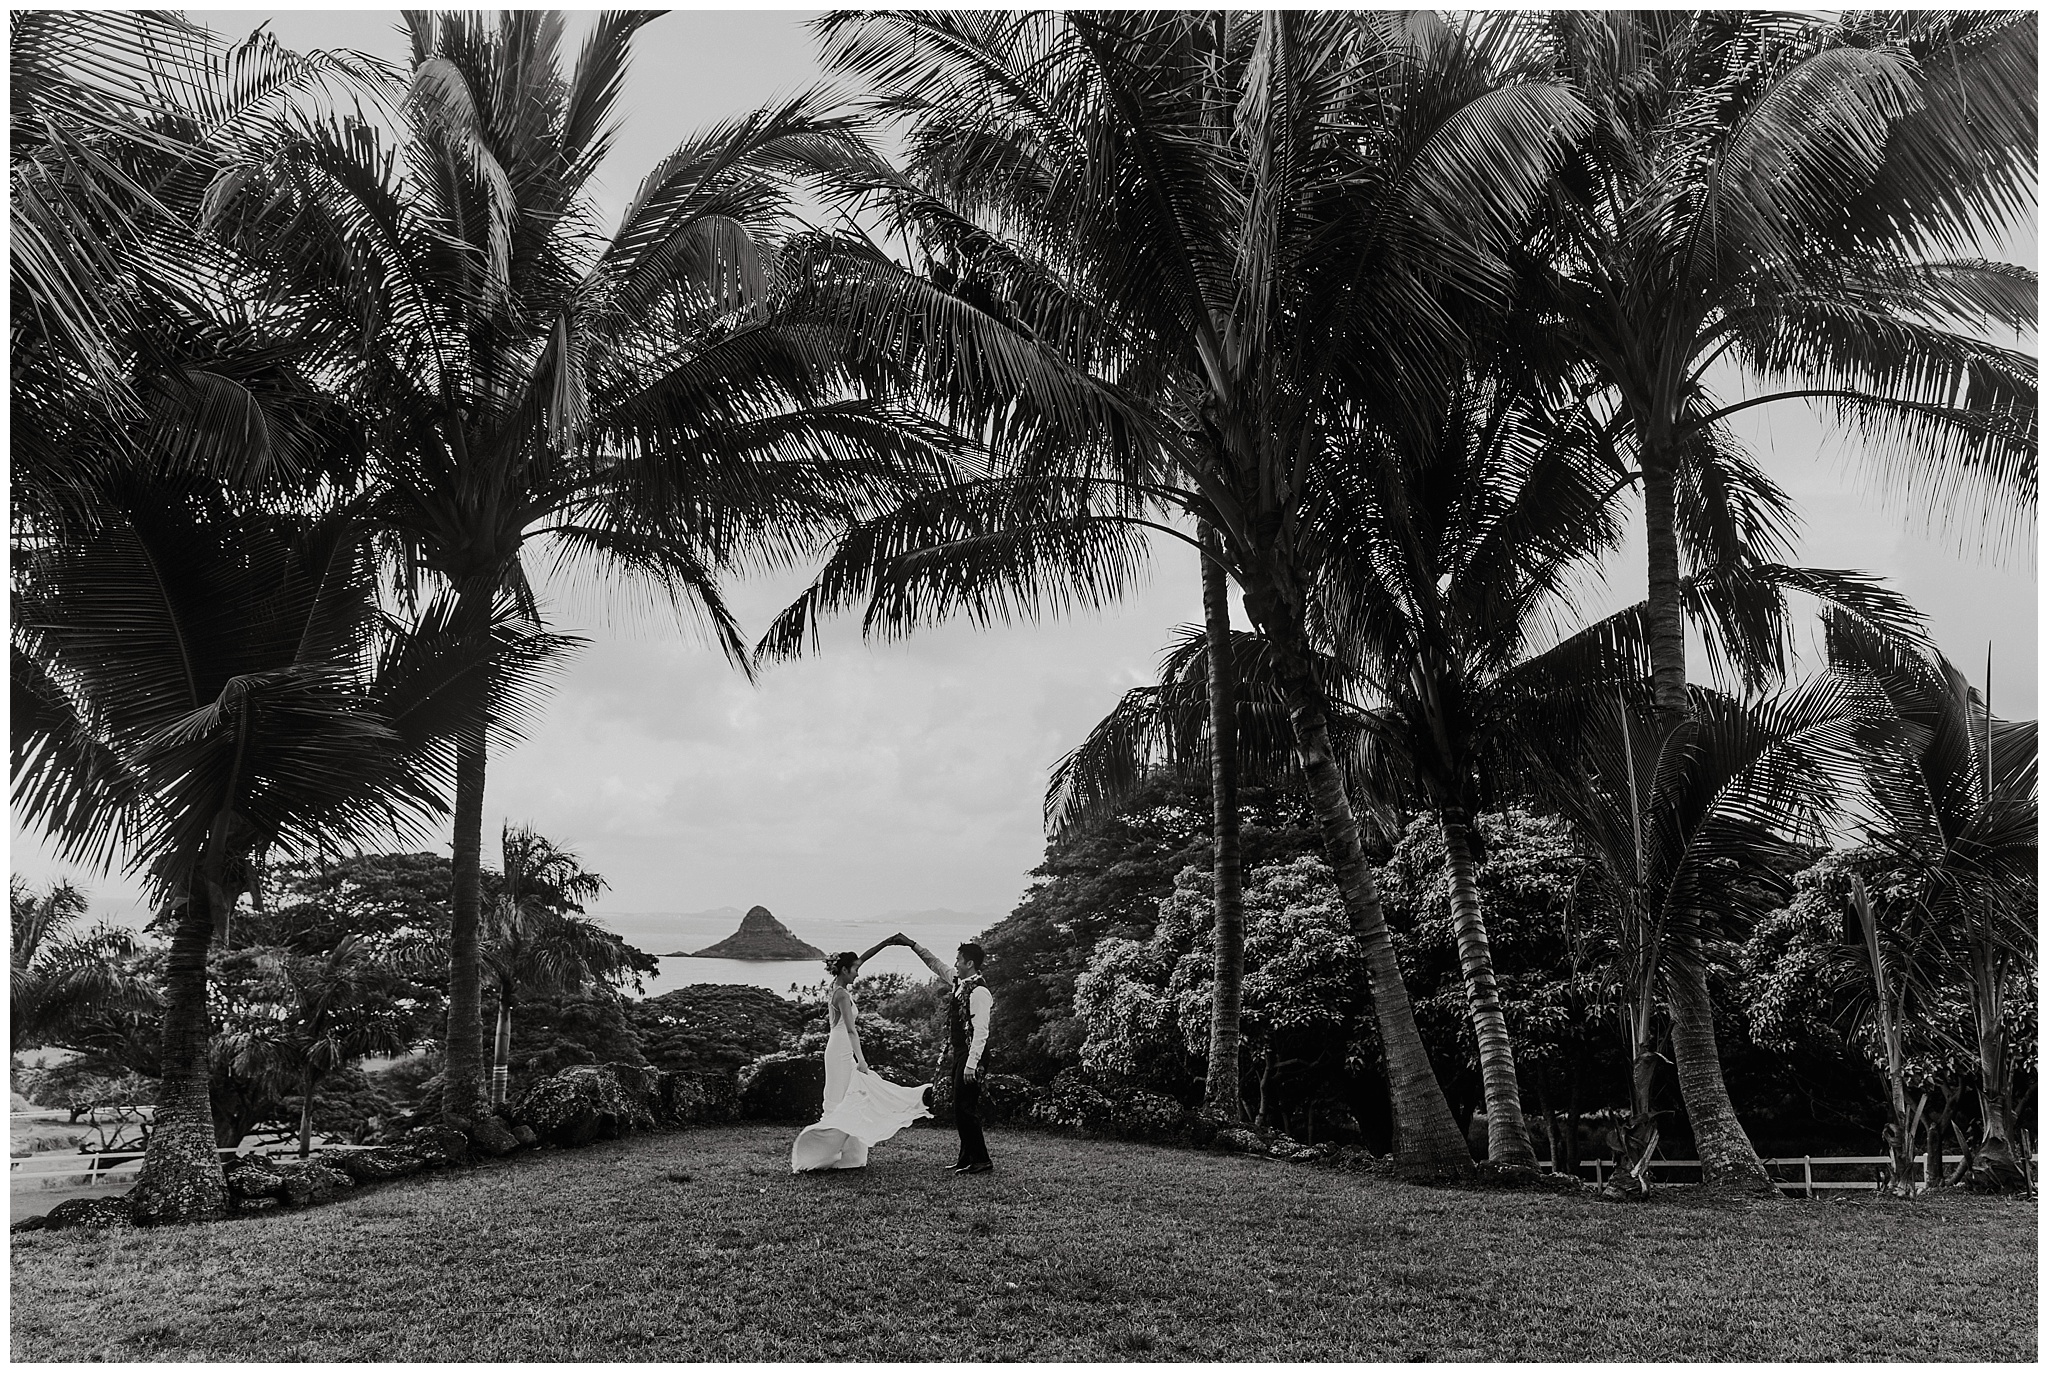 kualoa_ranch_wedding7.jpg